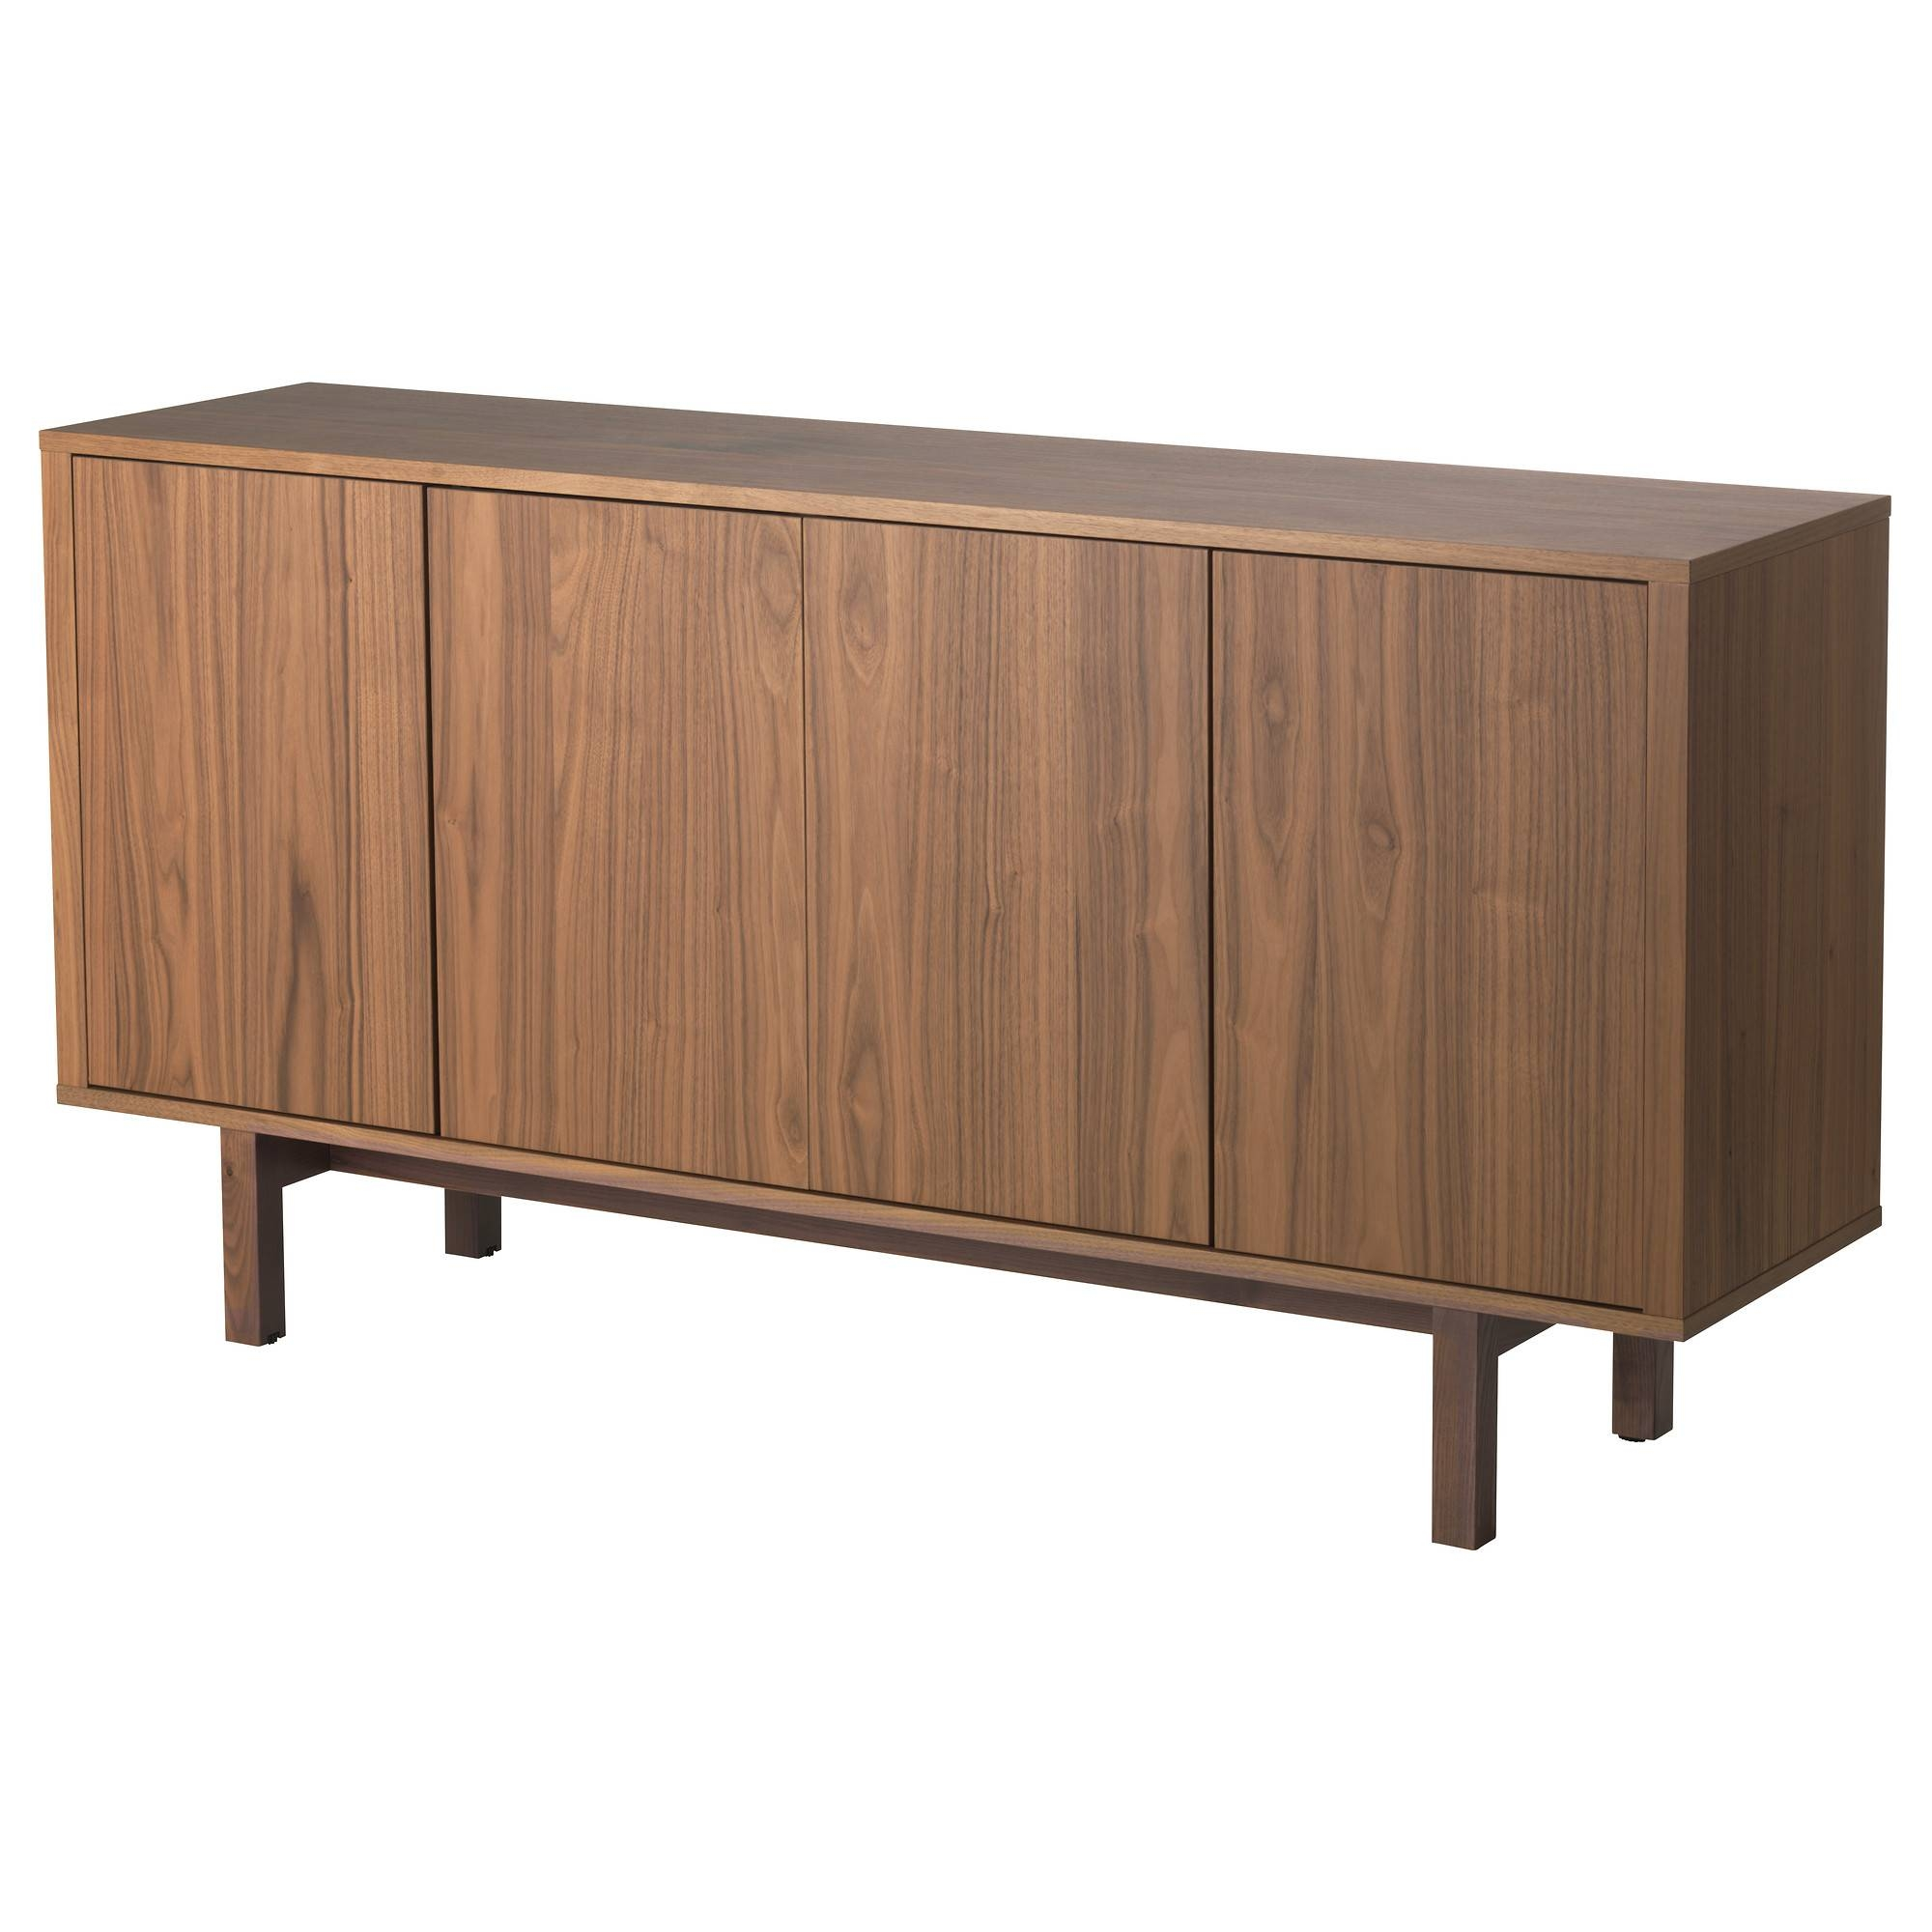 Stockholm Sideboard - Ikea pertaining to Hallway Sideboards (Image 15 of 15)